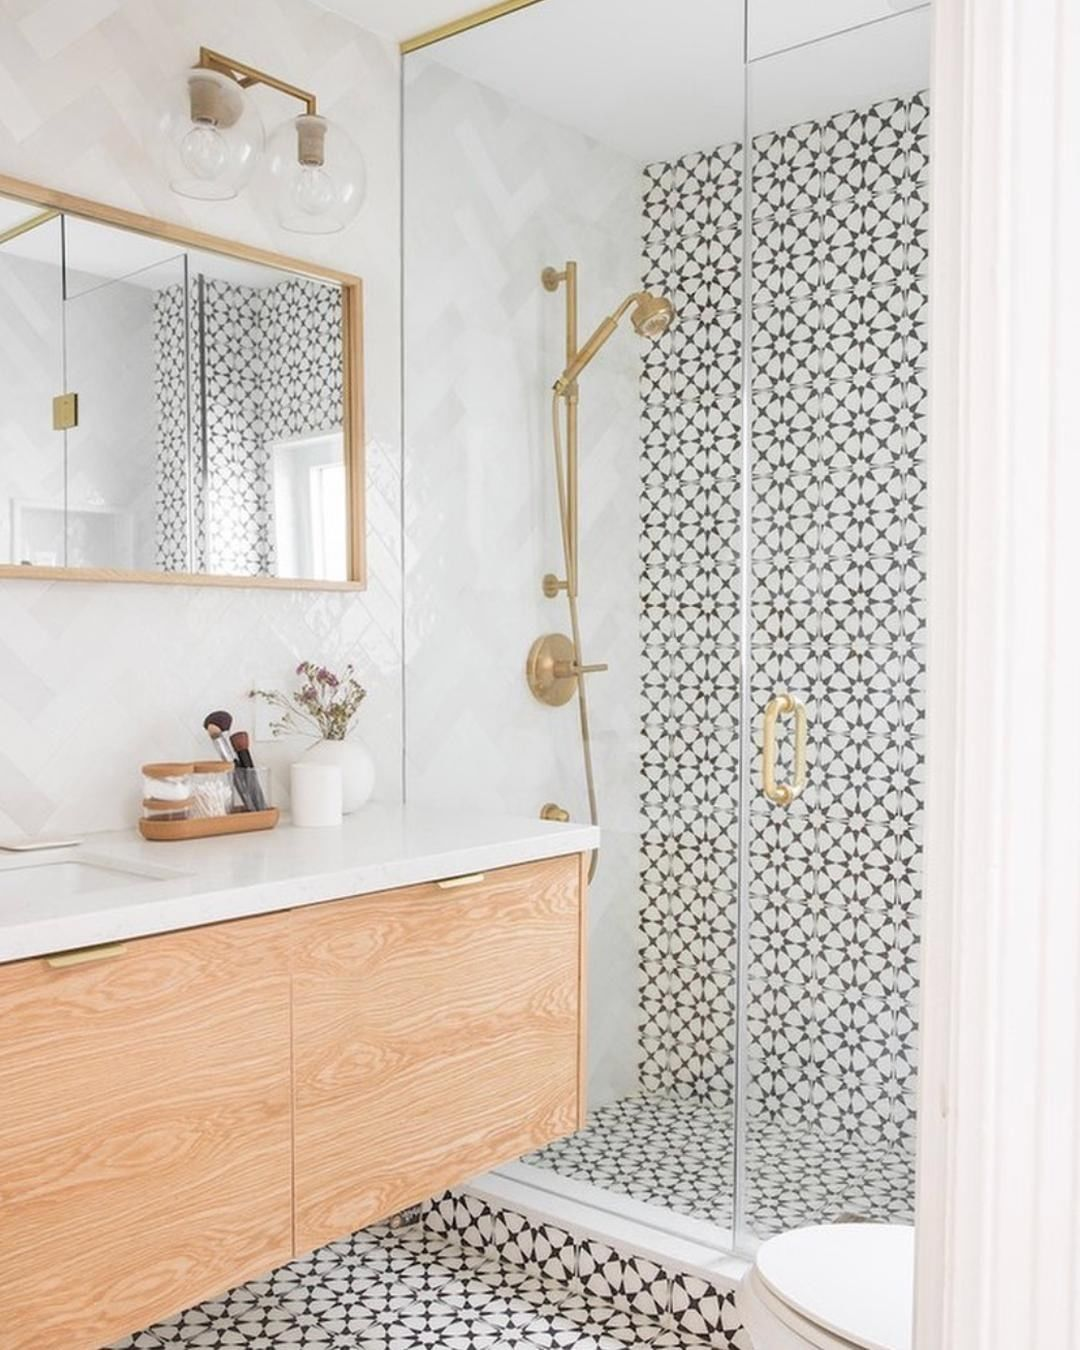 Build Com Home Improvement On Instagram Warm Up The Shower Without Even Getting Out Of Bed And You Ll In 2020 Patterned Bathroom Tiles Cement Tile Shop Tile Bathroom